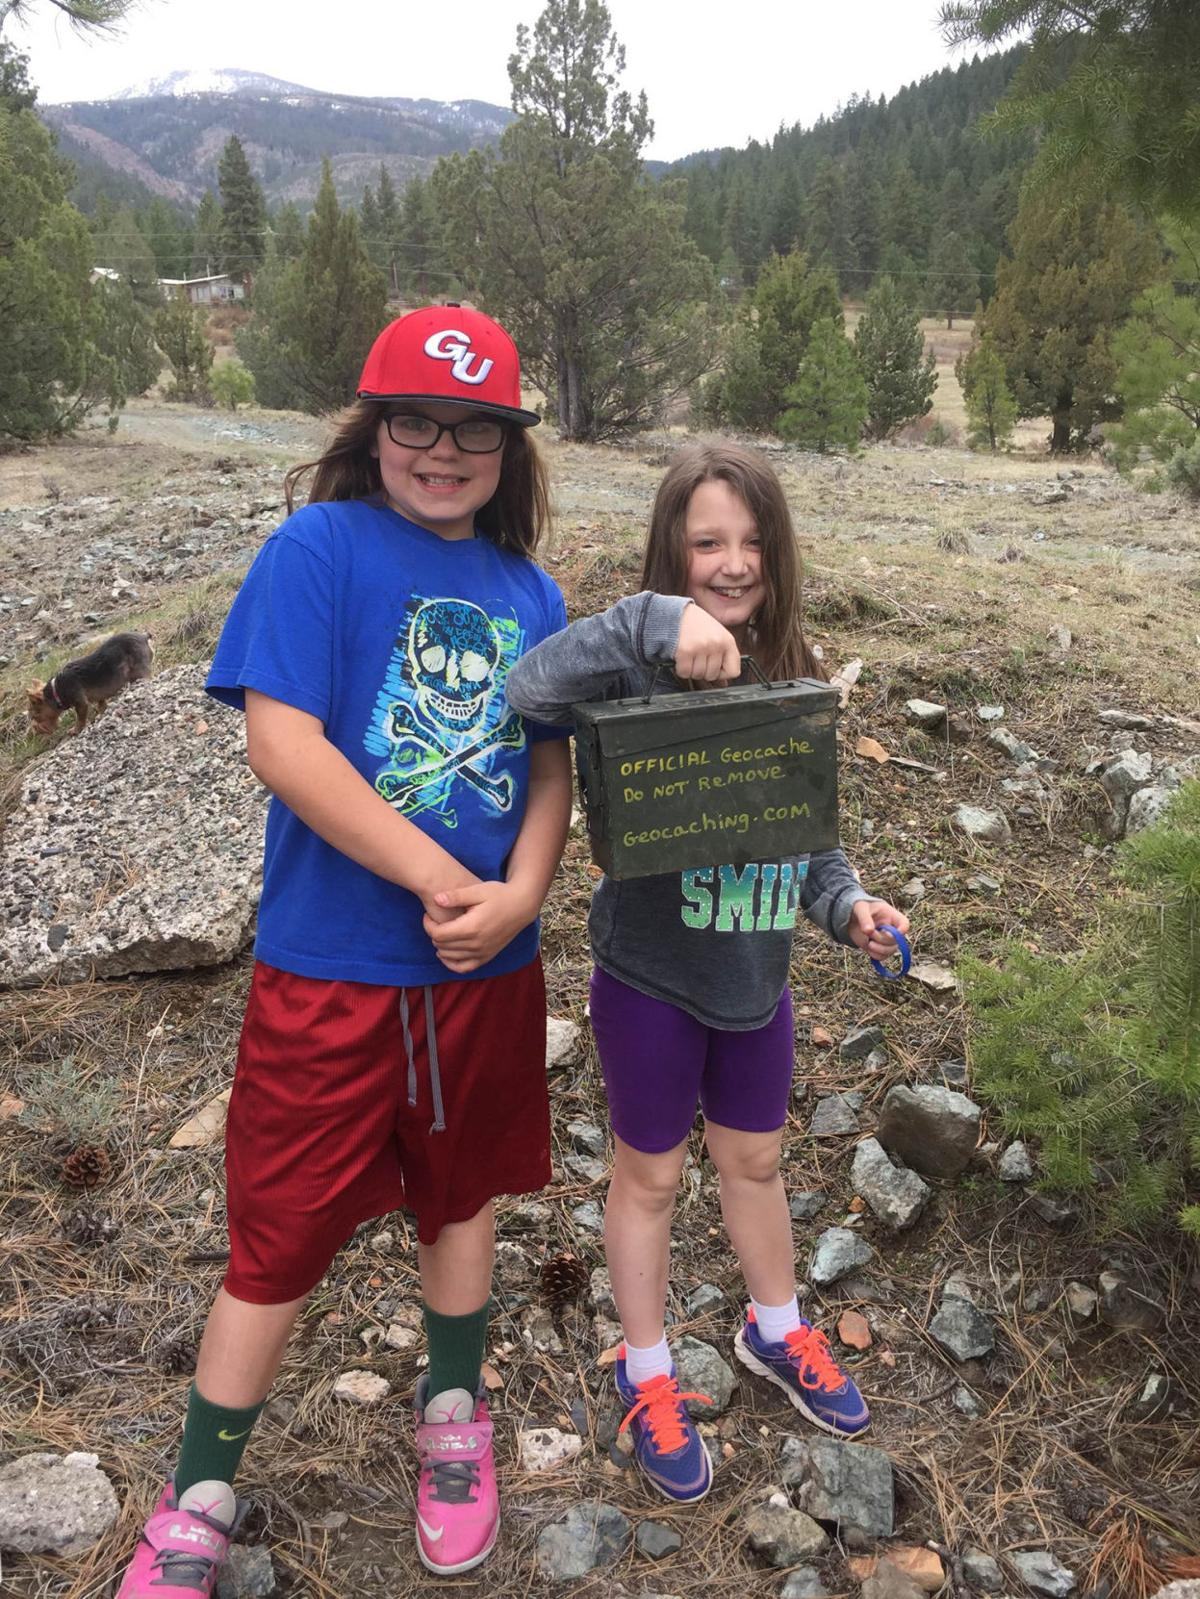 Geocaching 101: On the hunt for fun